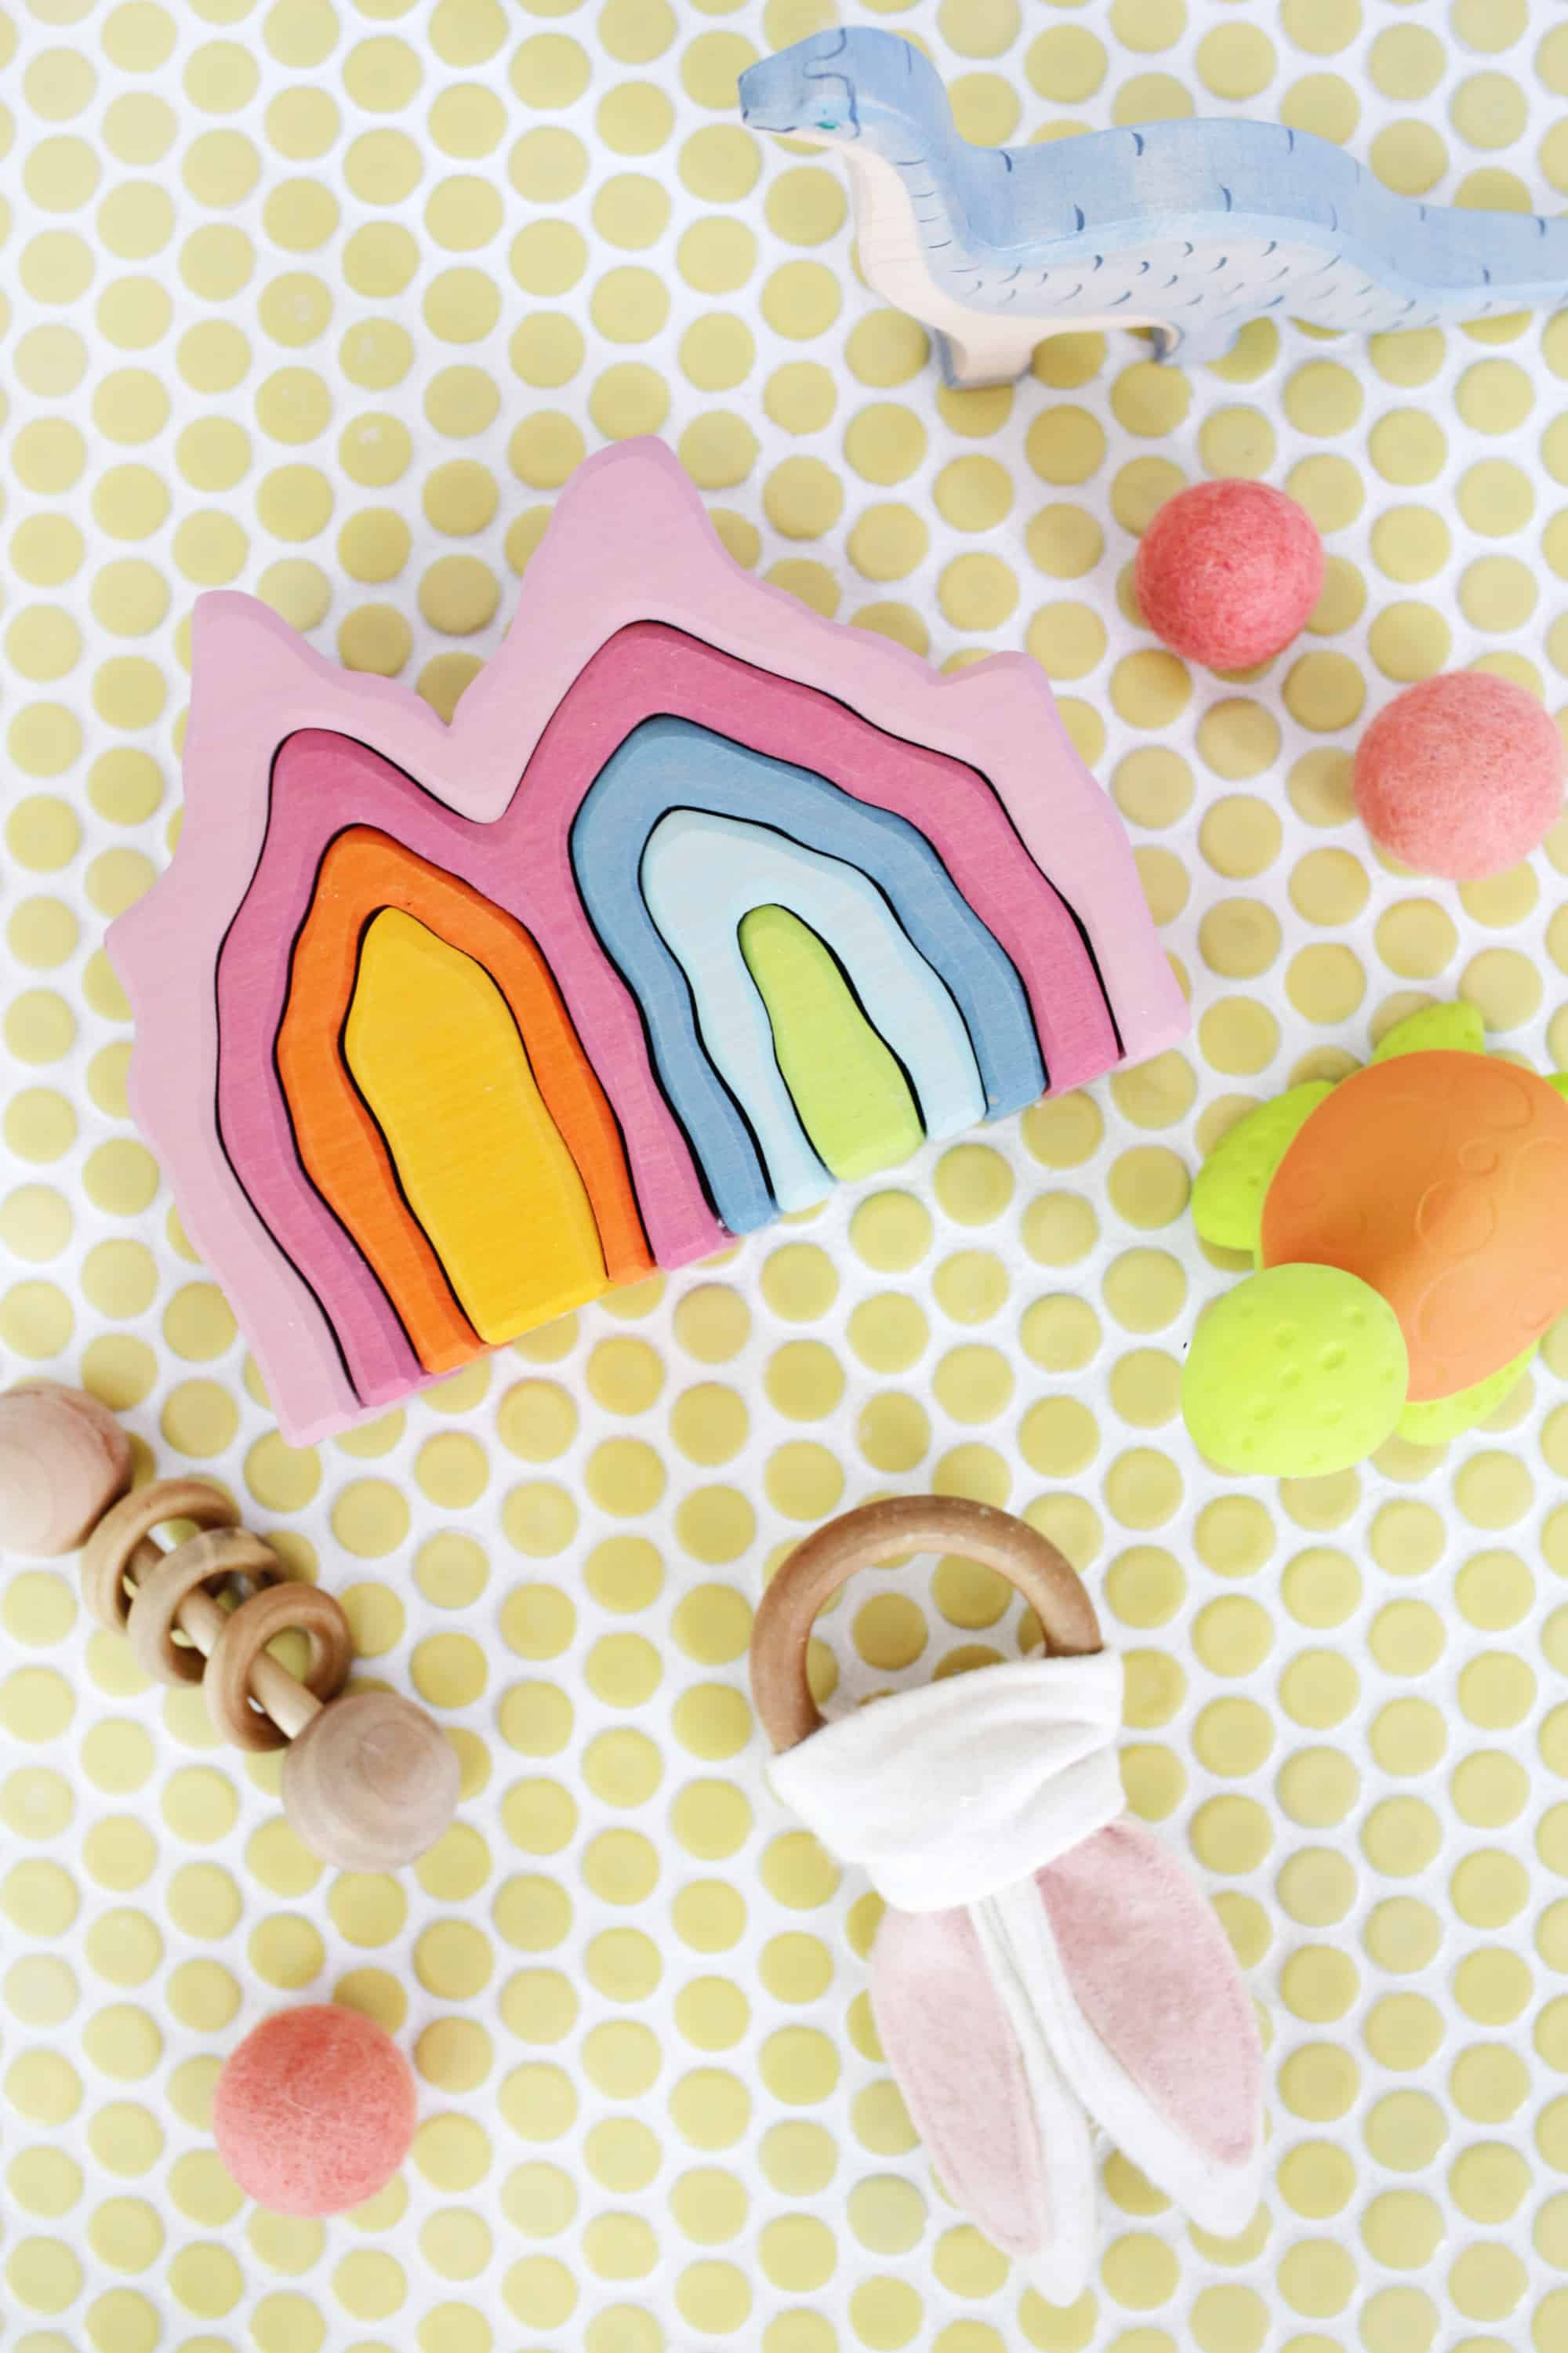 Find great natural products for your kiddos at www.abeautifulmess.com